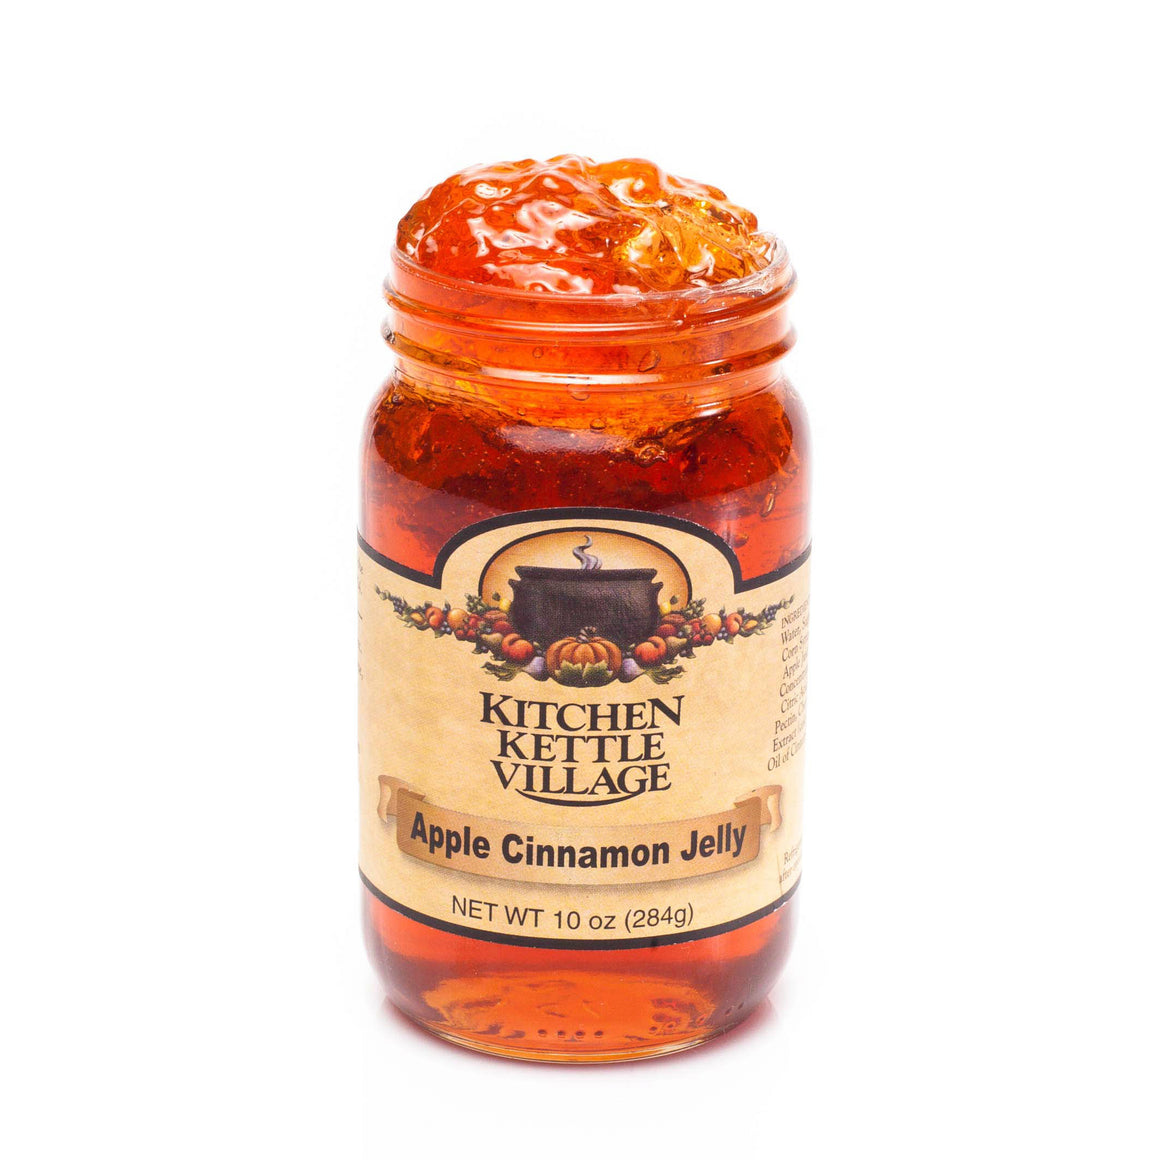 Apple Cinnamon Jelly